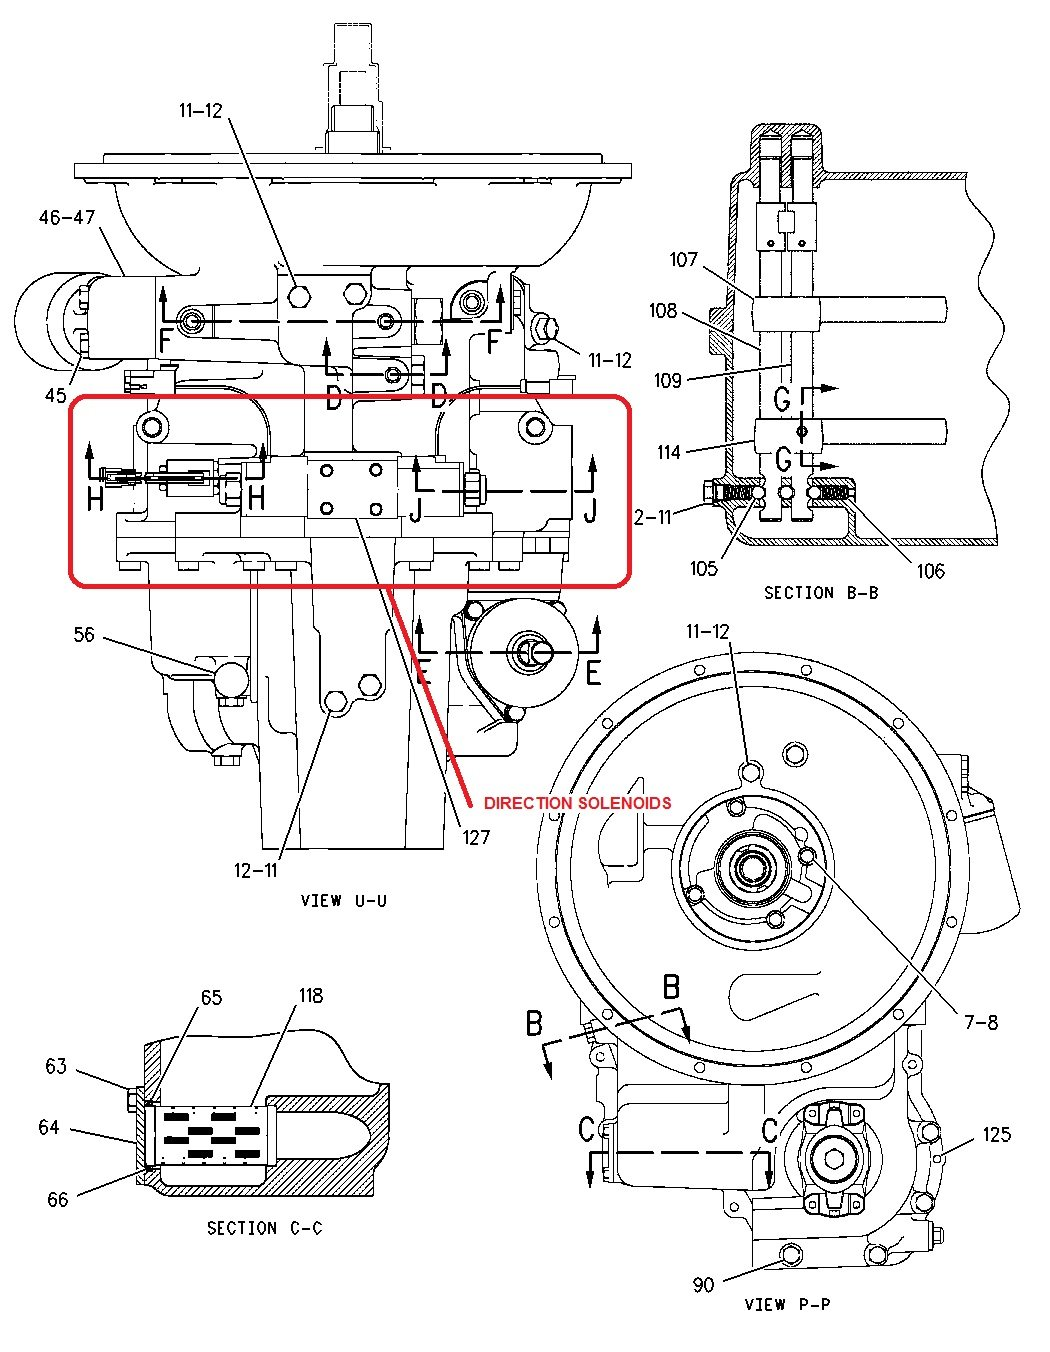 Wiring Diagram For Cat 420d